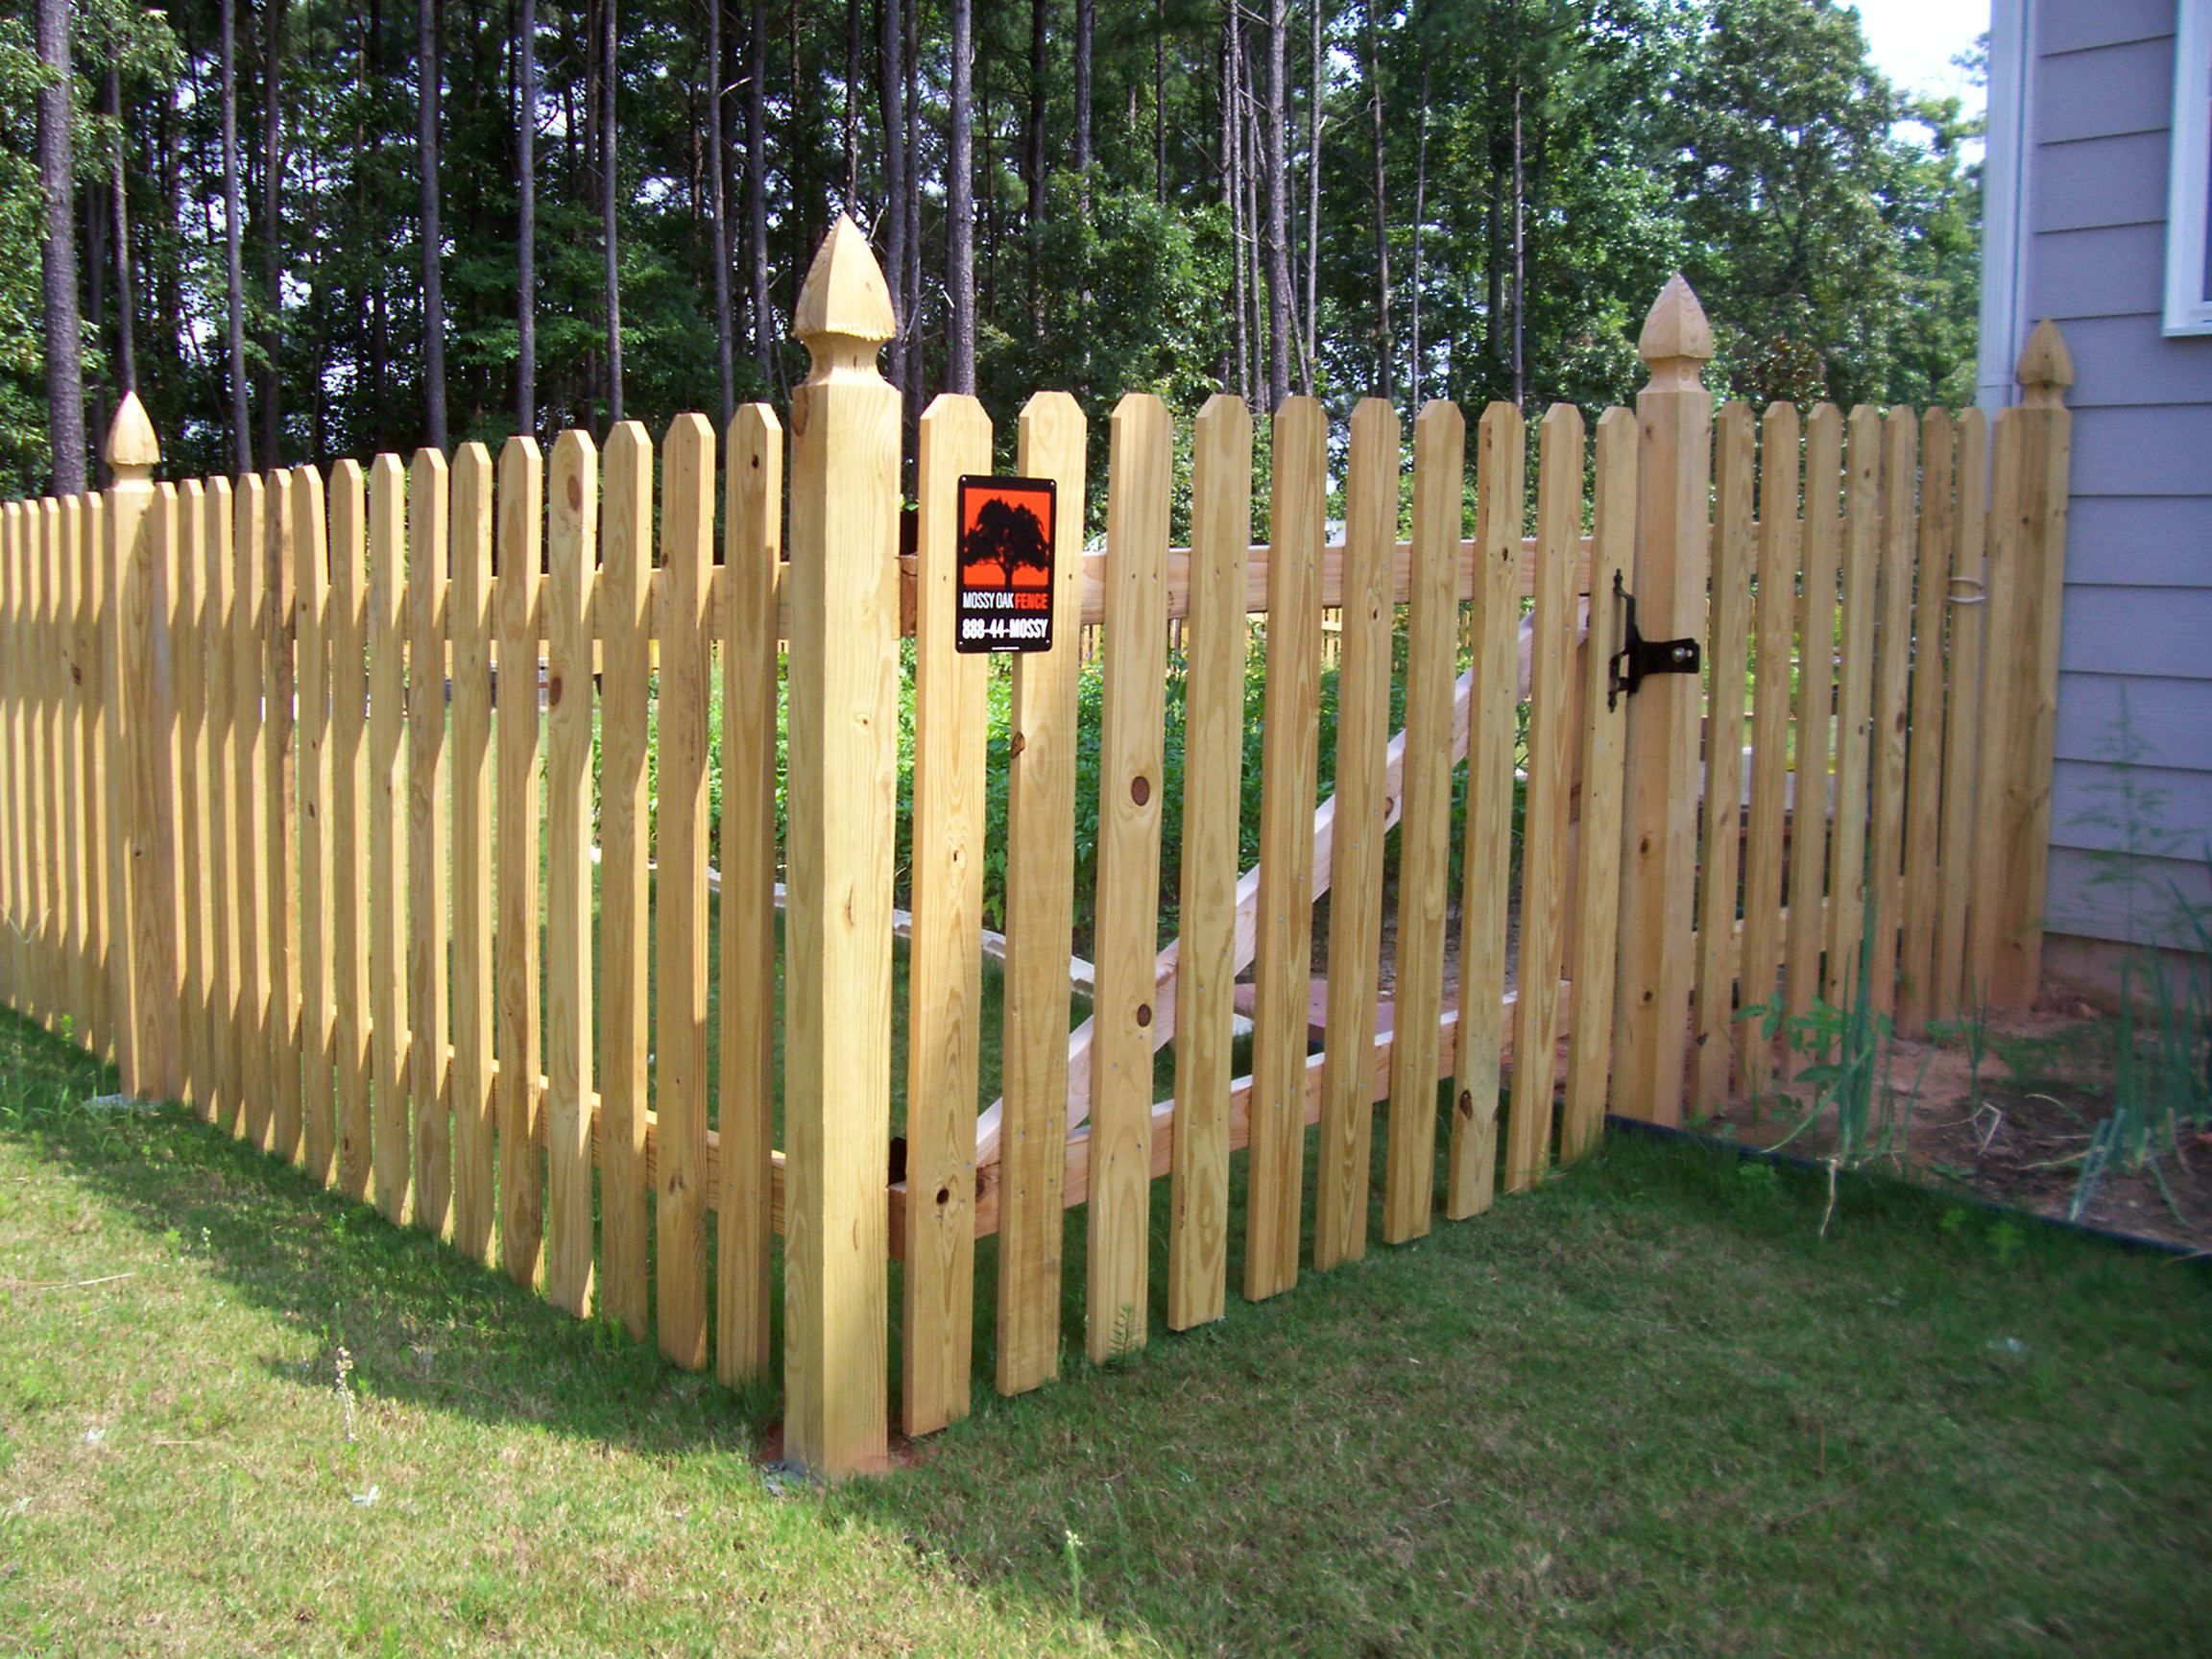 Wood Picket Fence With Gothic Posts Mossy Oak Fence Company Orlando Melbourne Fl Fence Design Wood Fence Design Picket Fence Panels